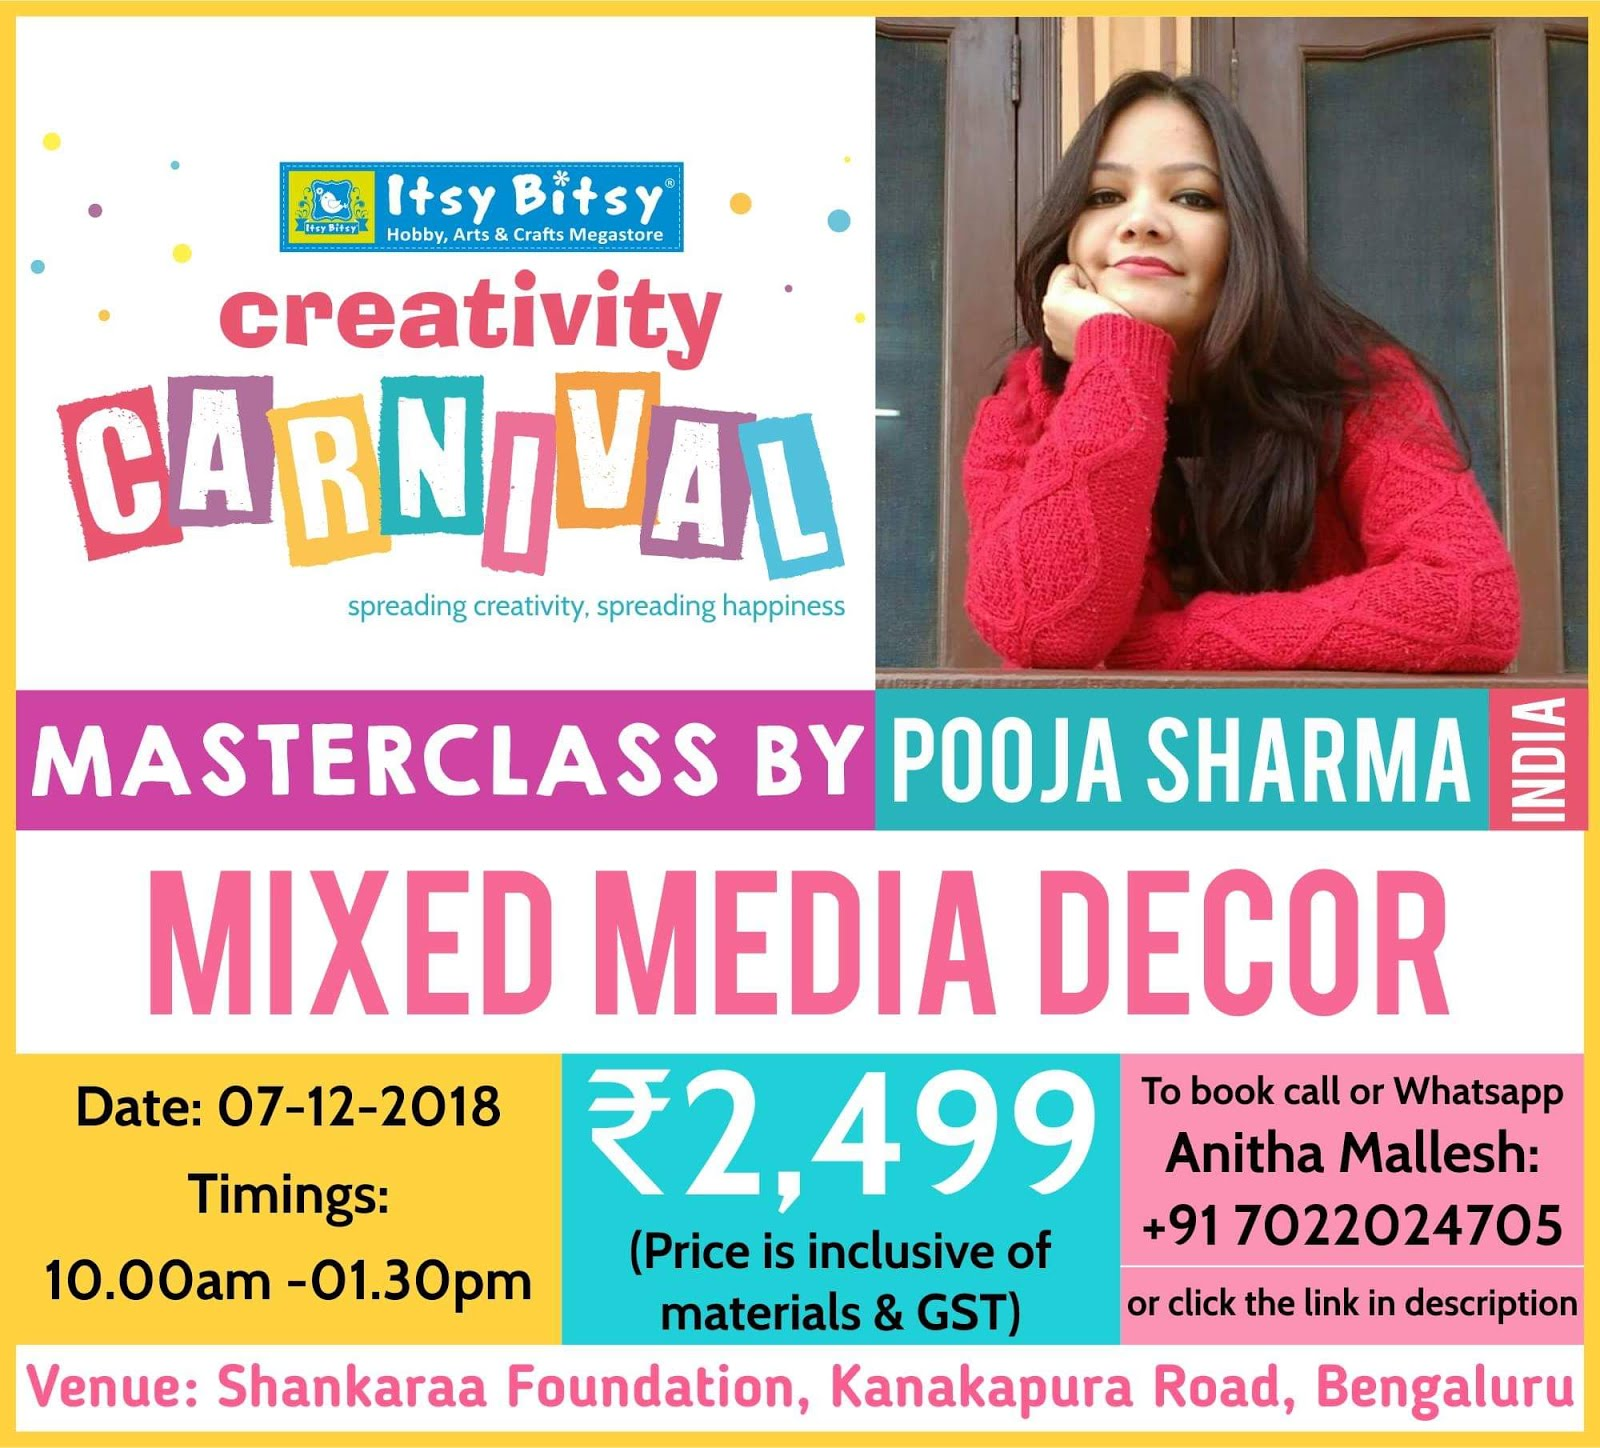 My master class at Itsy bitsy creativity carnival at Bangalore